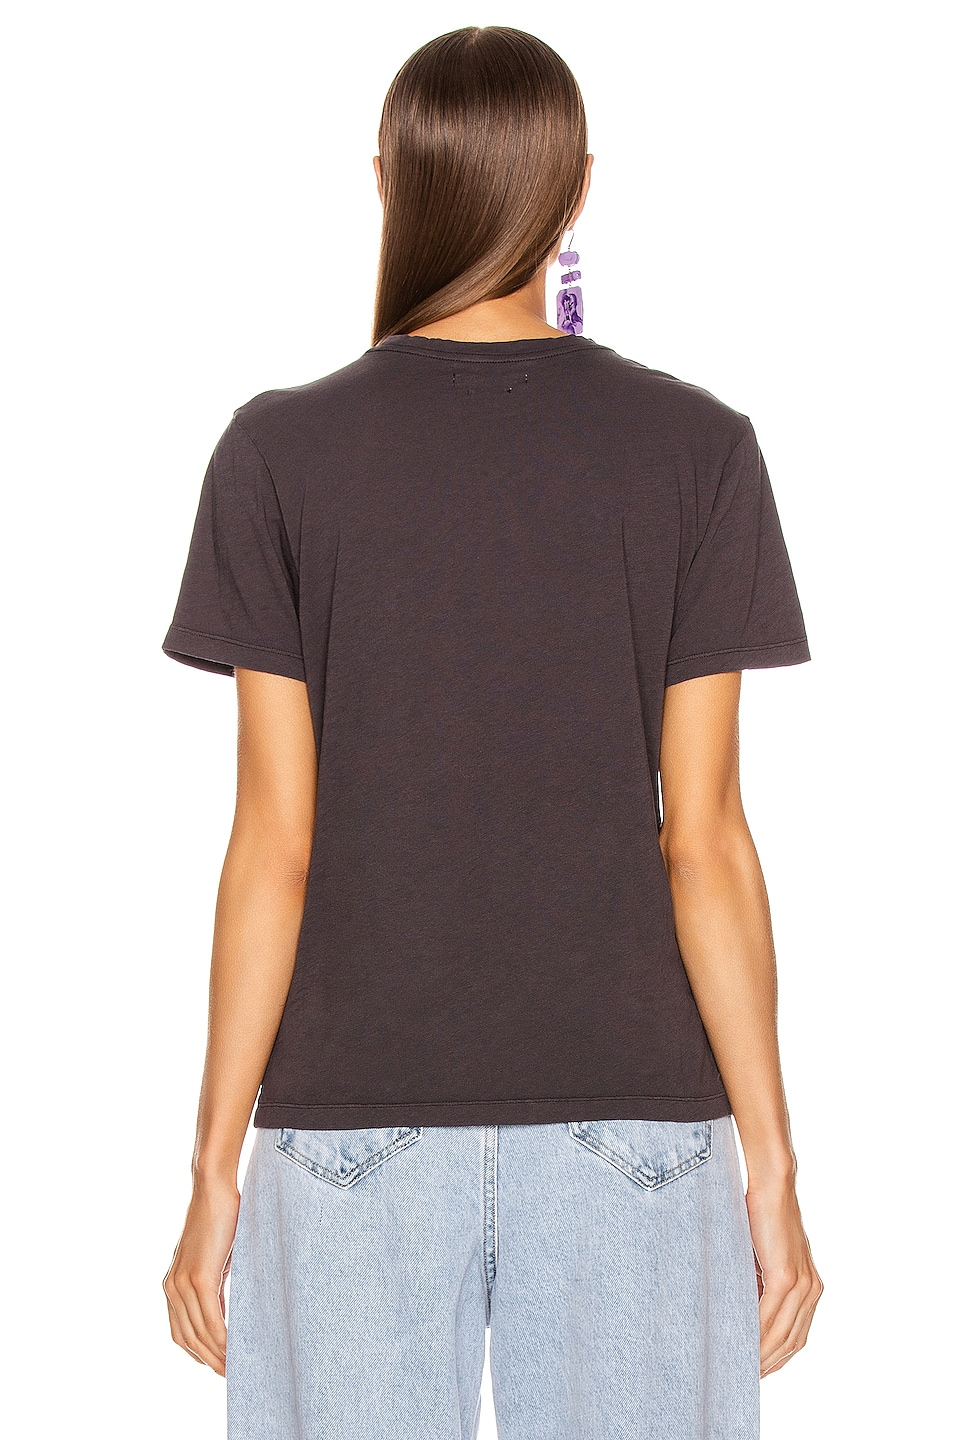 Image 4 of Isabel Marant Etoile Zewel Tee Shirt in Faded Black